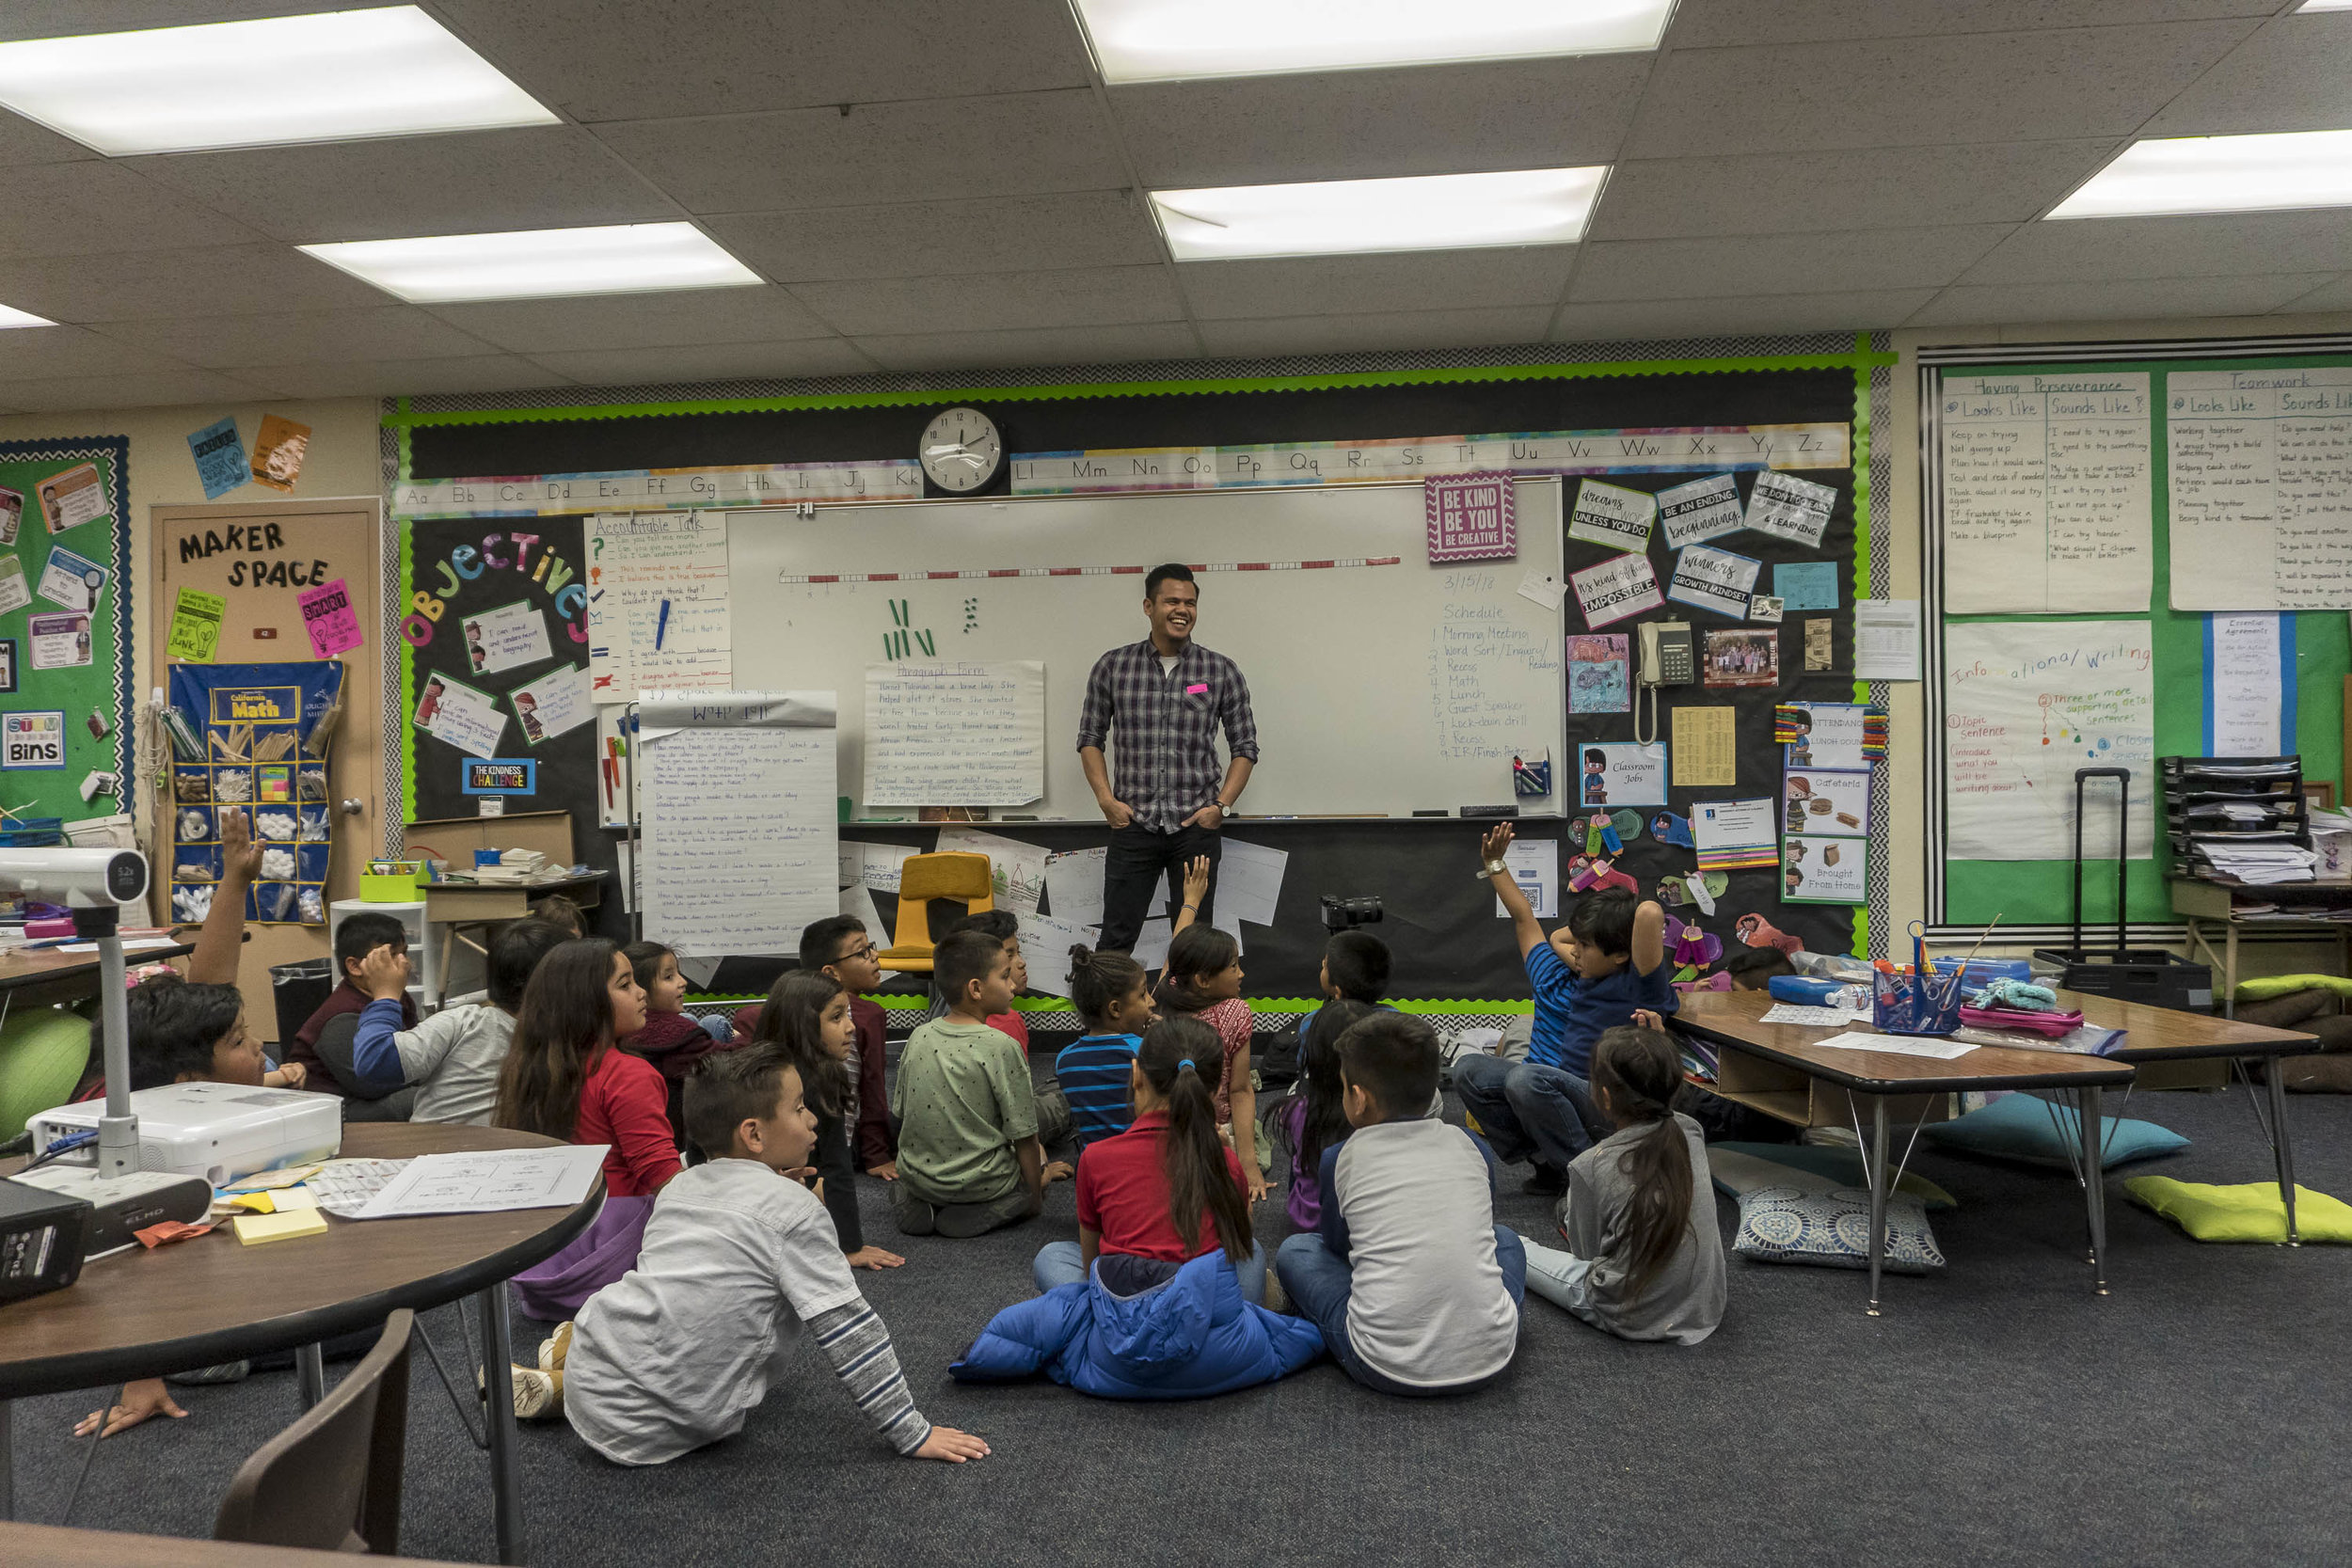 On career day, Xerxes Sangco describes to a class of 8 year olds the power of video production, creating YouTube content and the use of drones.